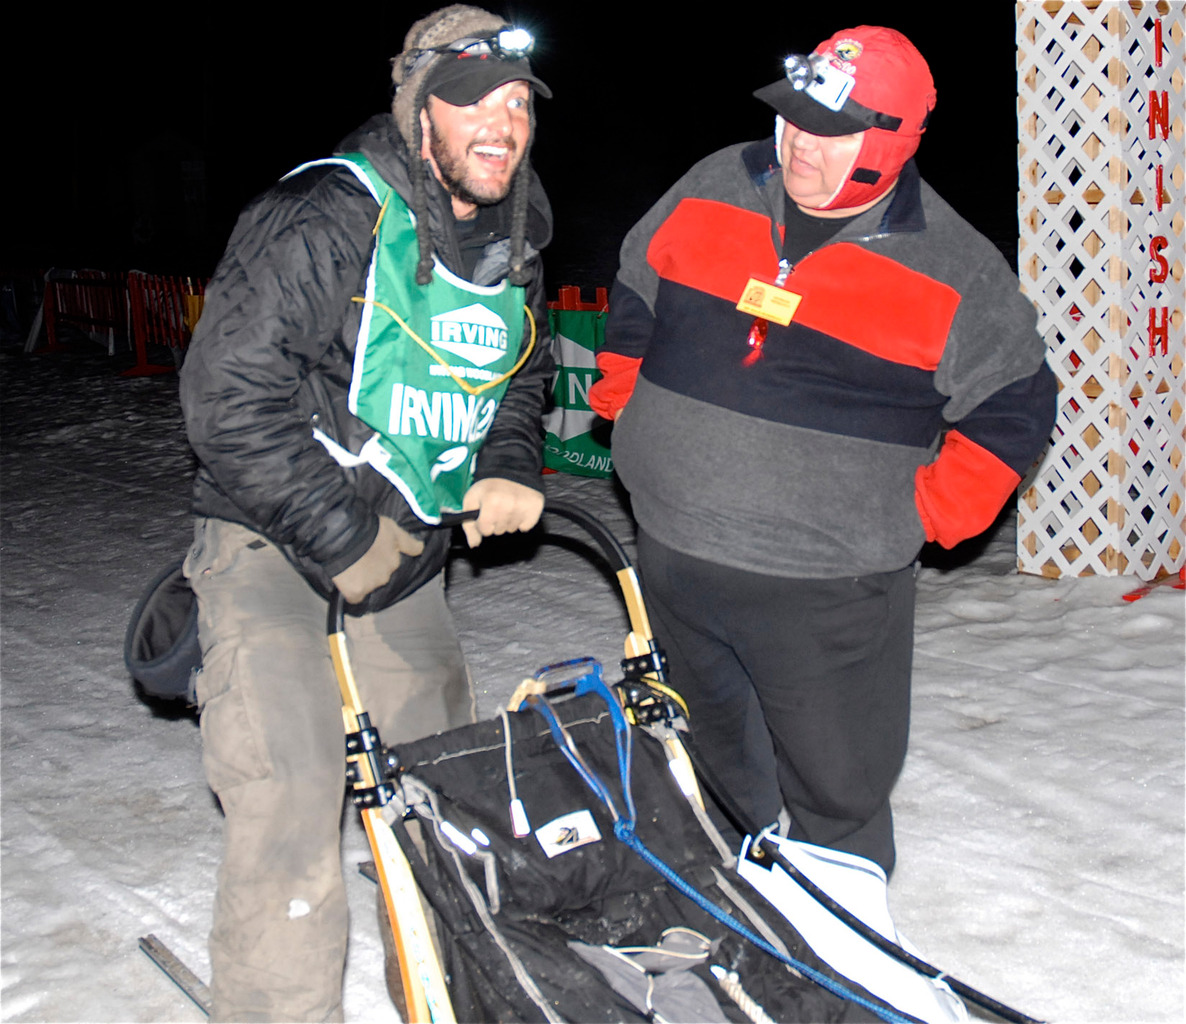 New Hampshire musher Matt Carstens (left) is all smiles after winning his second straight Irving Woodlands Can Am Crown International 250 Sled Dog Race Monday morning, March 8, 2010, in Fort Kent. Carstens crossed the finish line at 3:15 a.m., with a running time of just over 26 hours from his Main Street start on Saturday. (Photo by Julia Bayly)